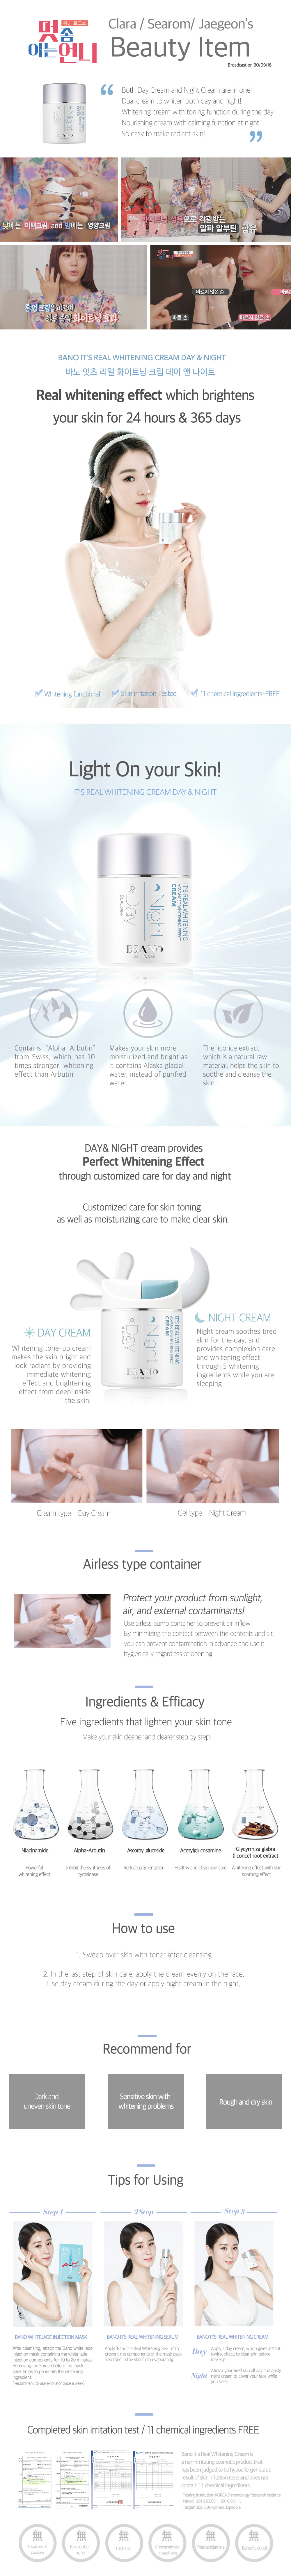 Its Real Whitening Cream